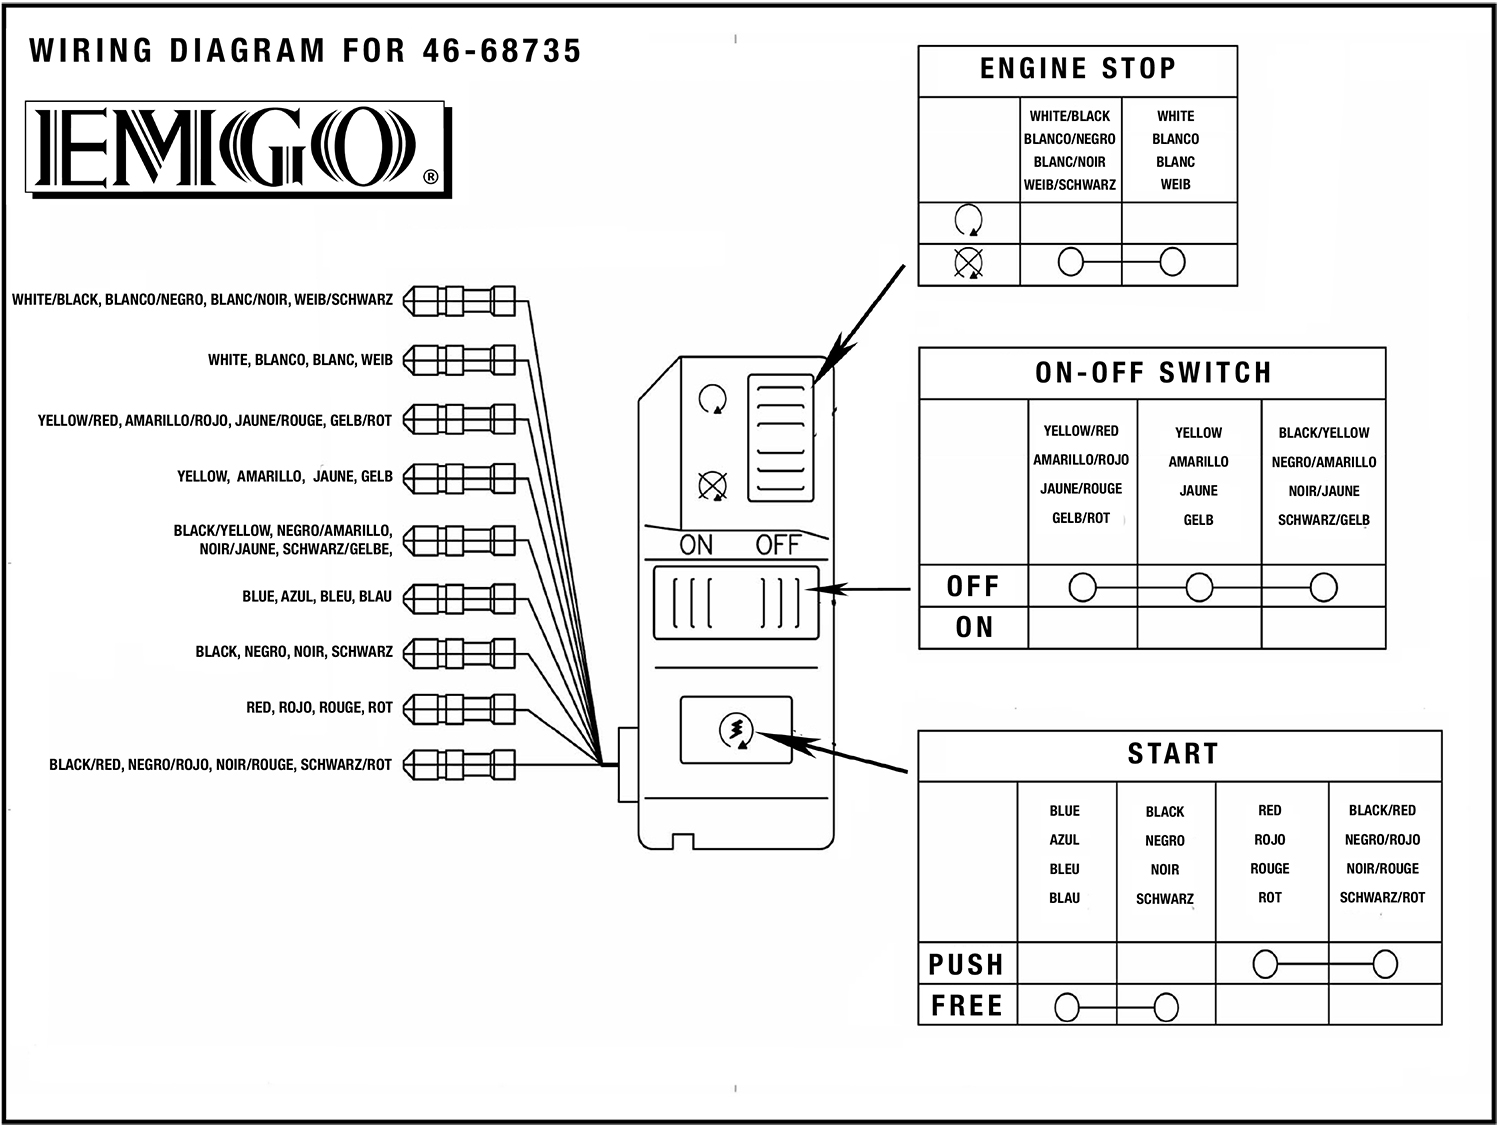 46 68735 wiring diagram emgo universal multi switch handlebar motorcycle dual sport cafe pin out right?t=1490388975 emgo universal handlebar multi switch right 46 68735 wiring emgo coil wire diagram at webbmarketing.co